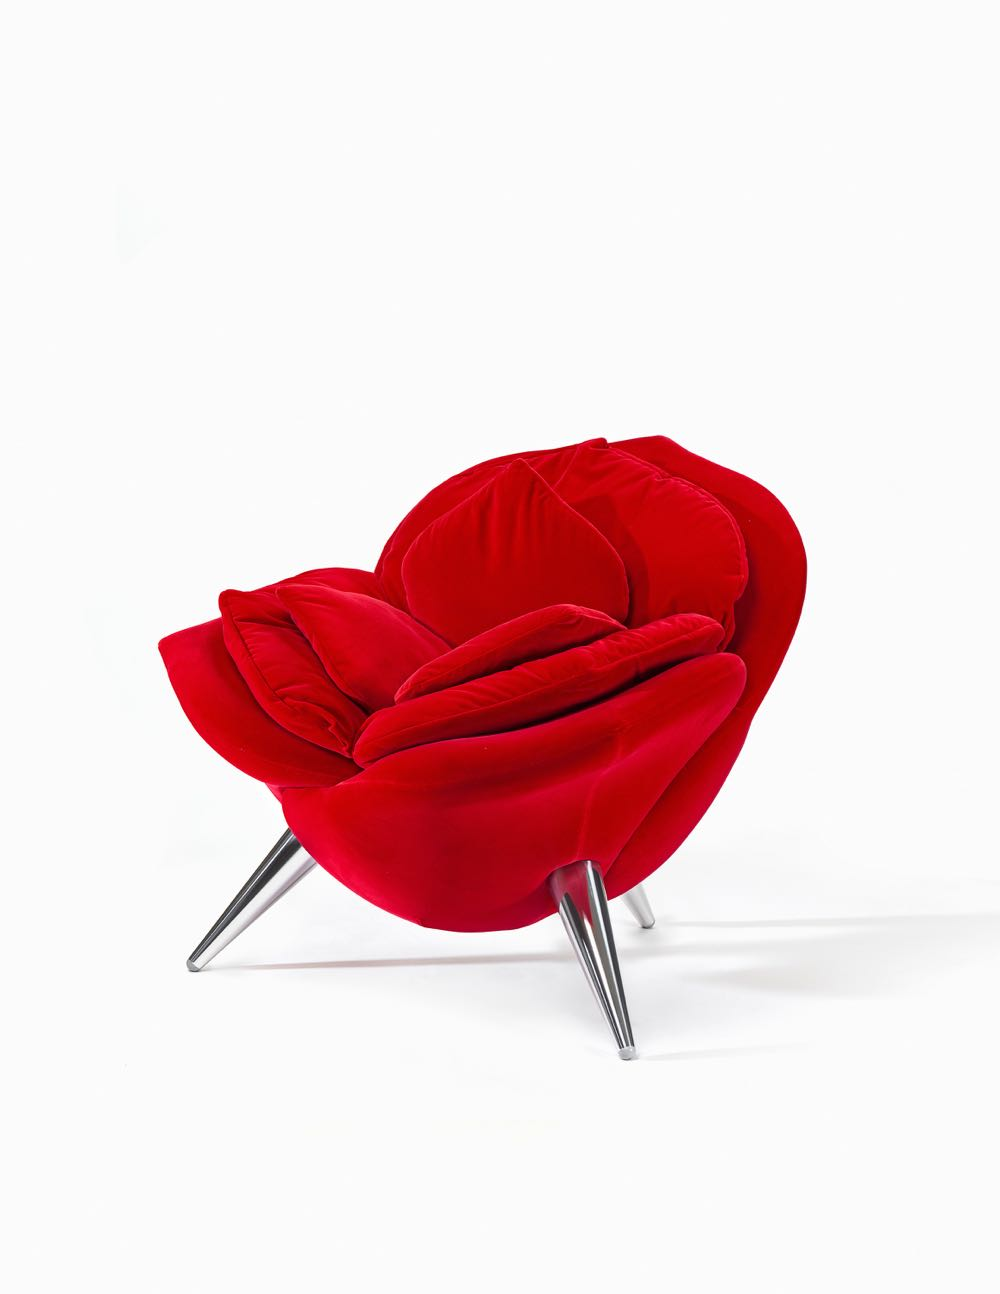 Masanori Umeda's 'Rose armchair' designed in 1989. Manufactured by Edra, Pisa, Italy from 1990. Cotton/silk velvet, polyurethane foam, plywood, synthetic polyester wadding, steel, aluminium, plastic. 80 x 90 x 82 cm